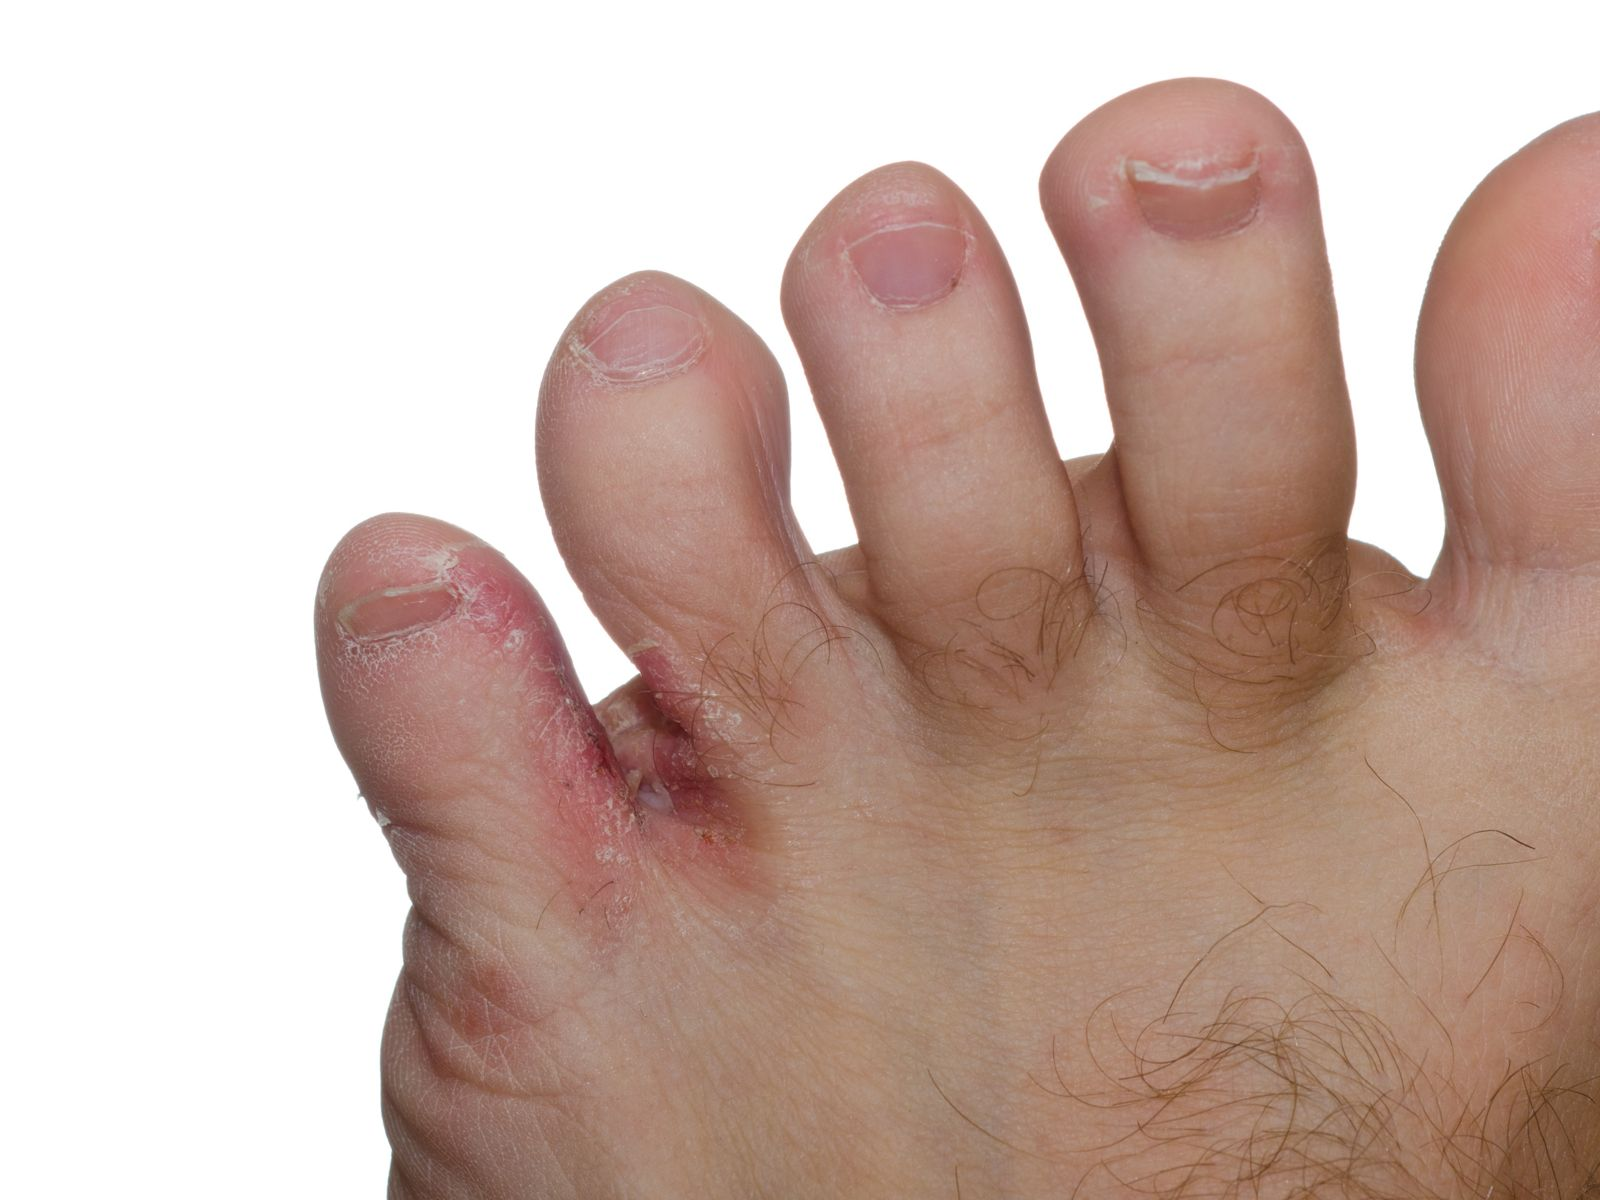 Close up redness and flaking skin between 4th and 5th toes.